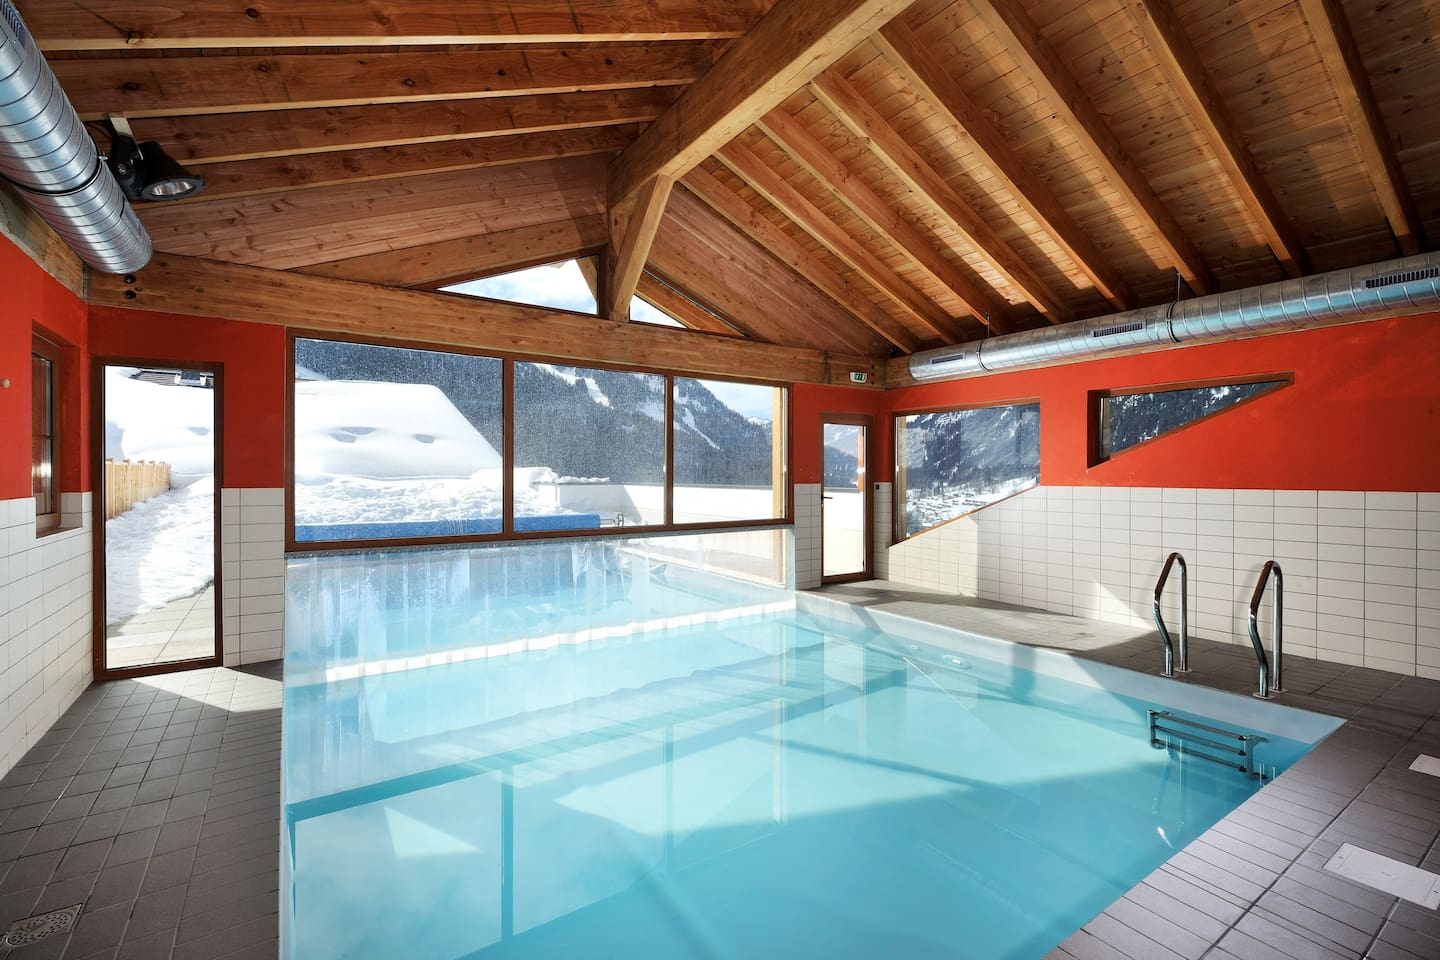 Dive into the gorgeous indoor/outdoor pool after a great day on the pistes.